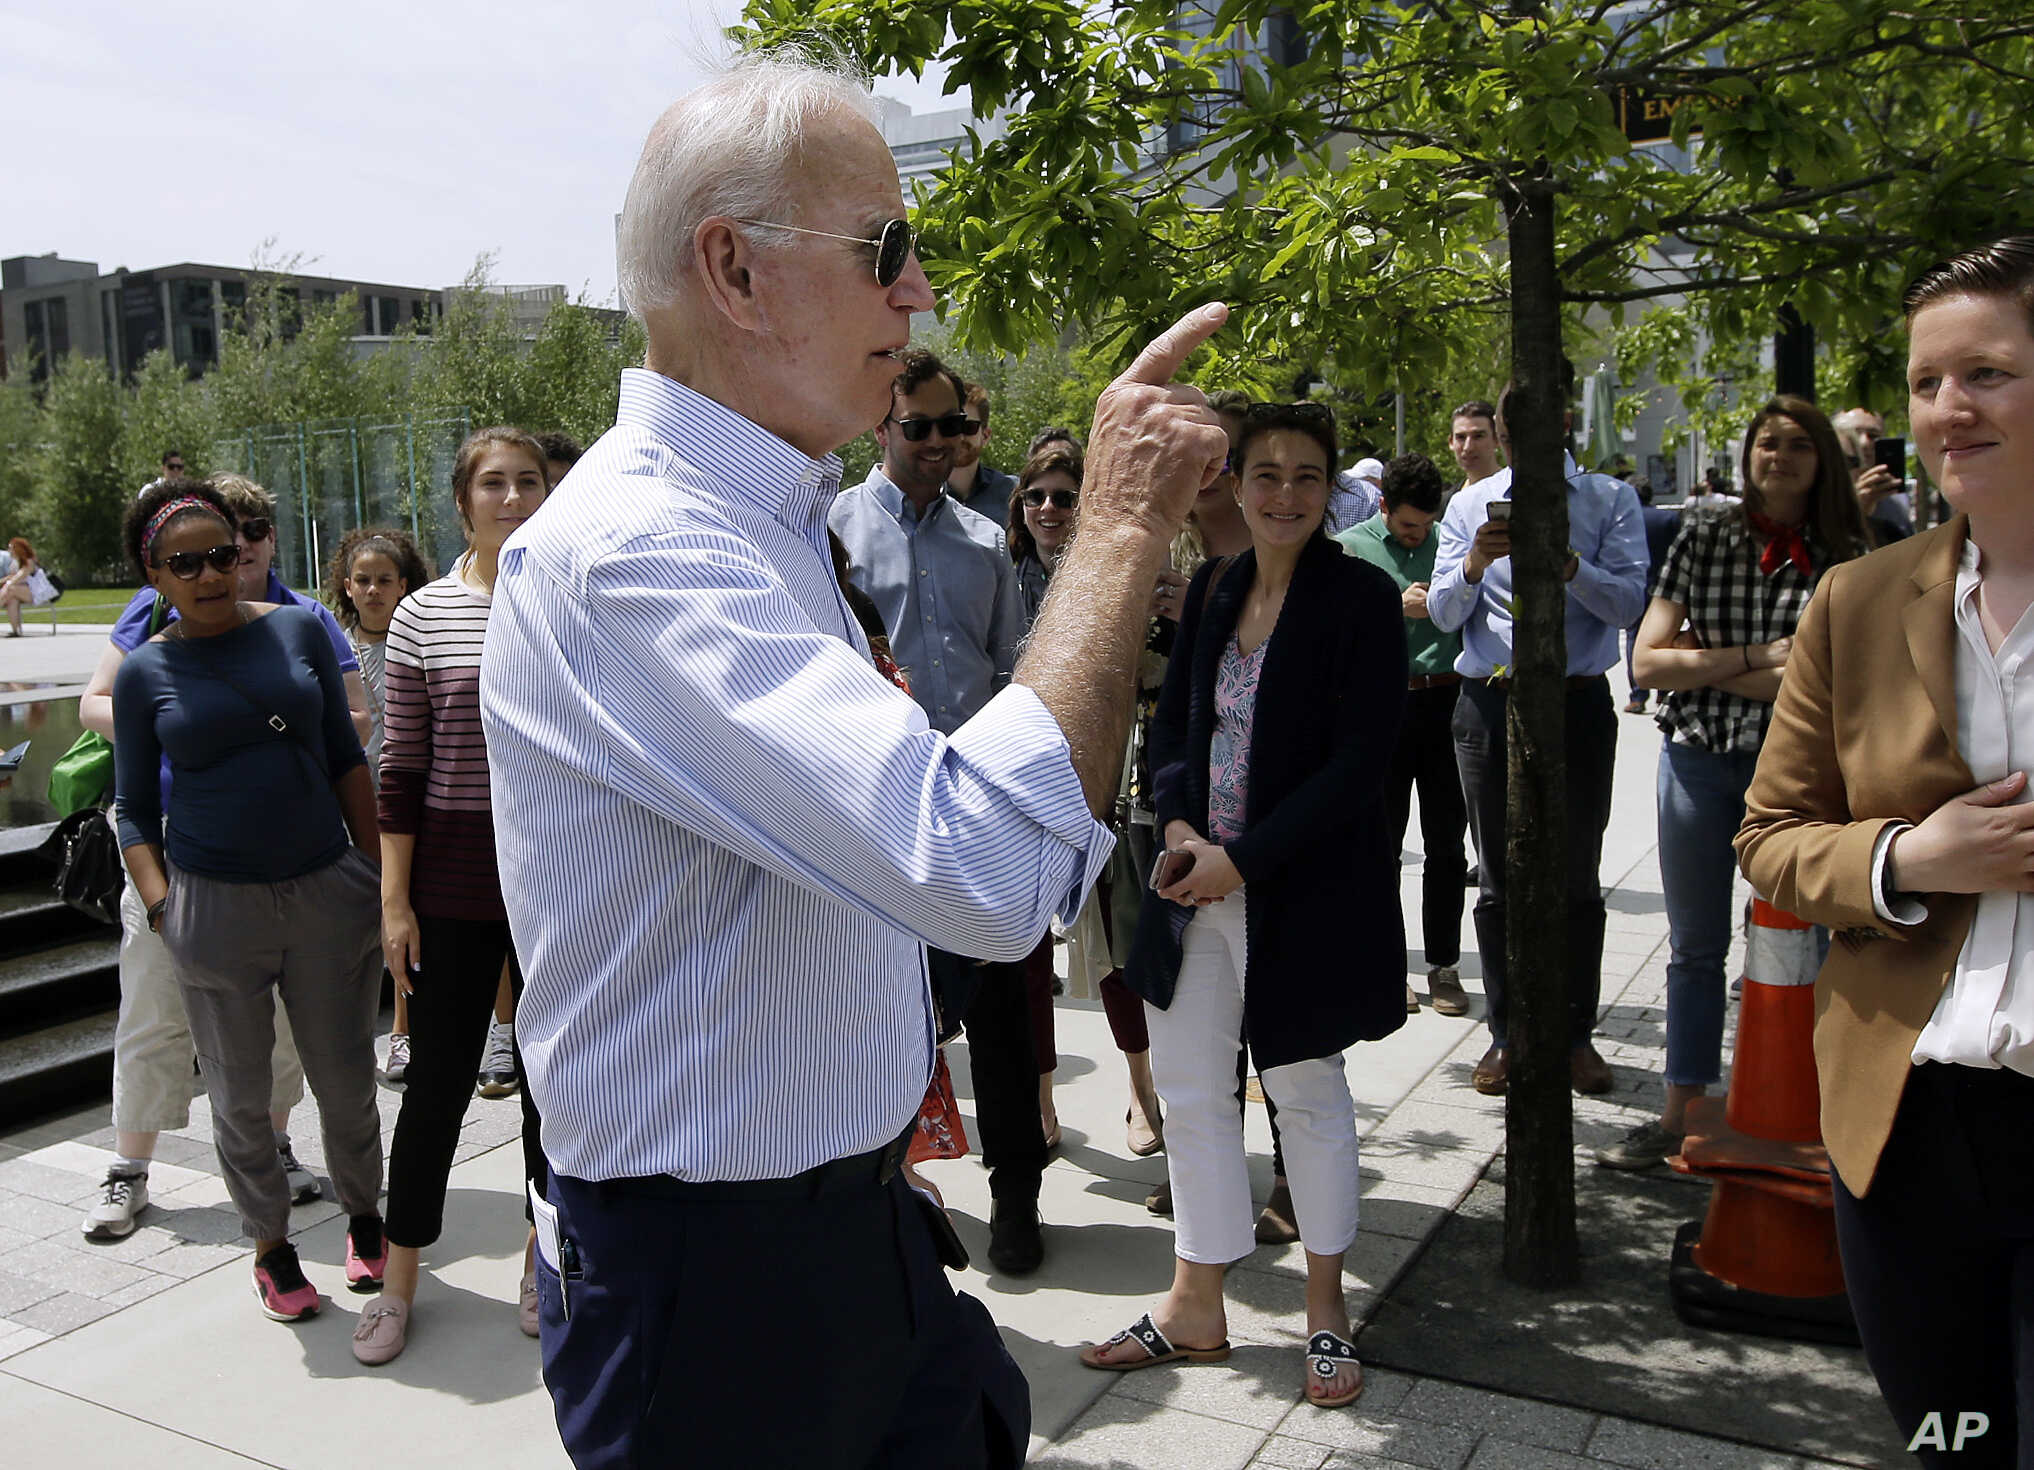 Former U.S. vice president and Democratic presidential candidate Joe Biden speaks to people in downtown Boston, Massachusetts, June 5, 2019.